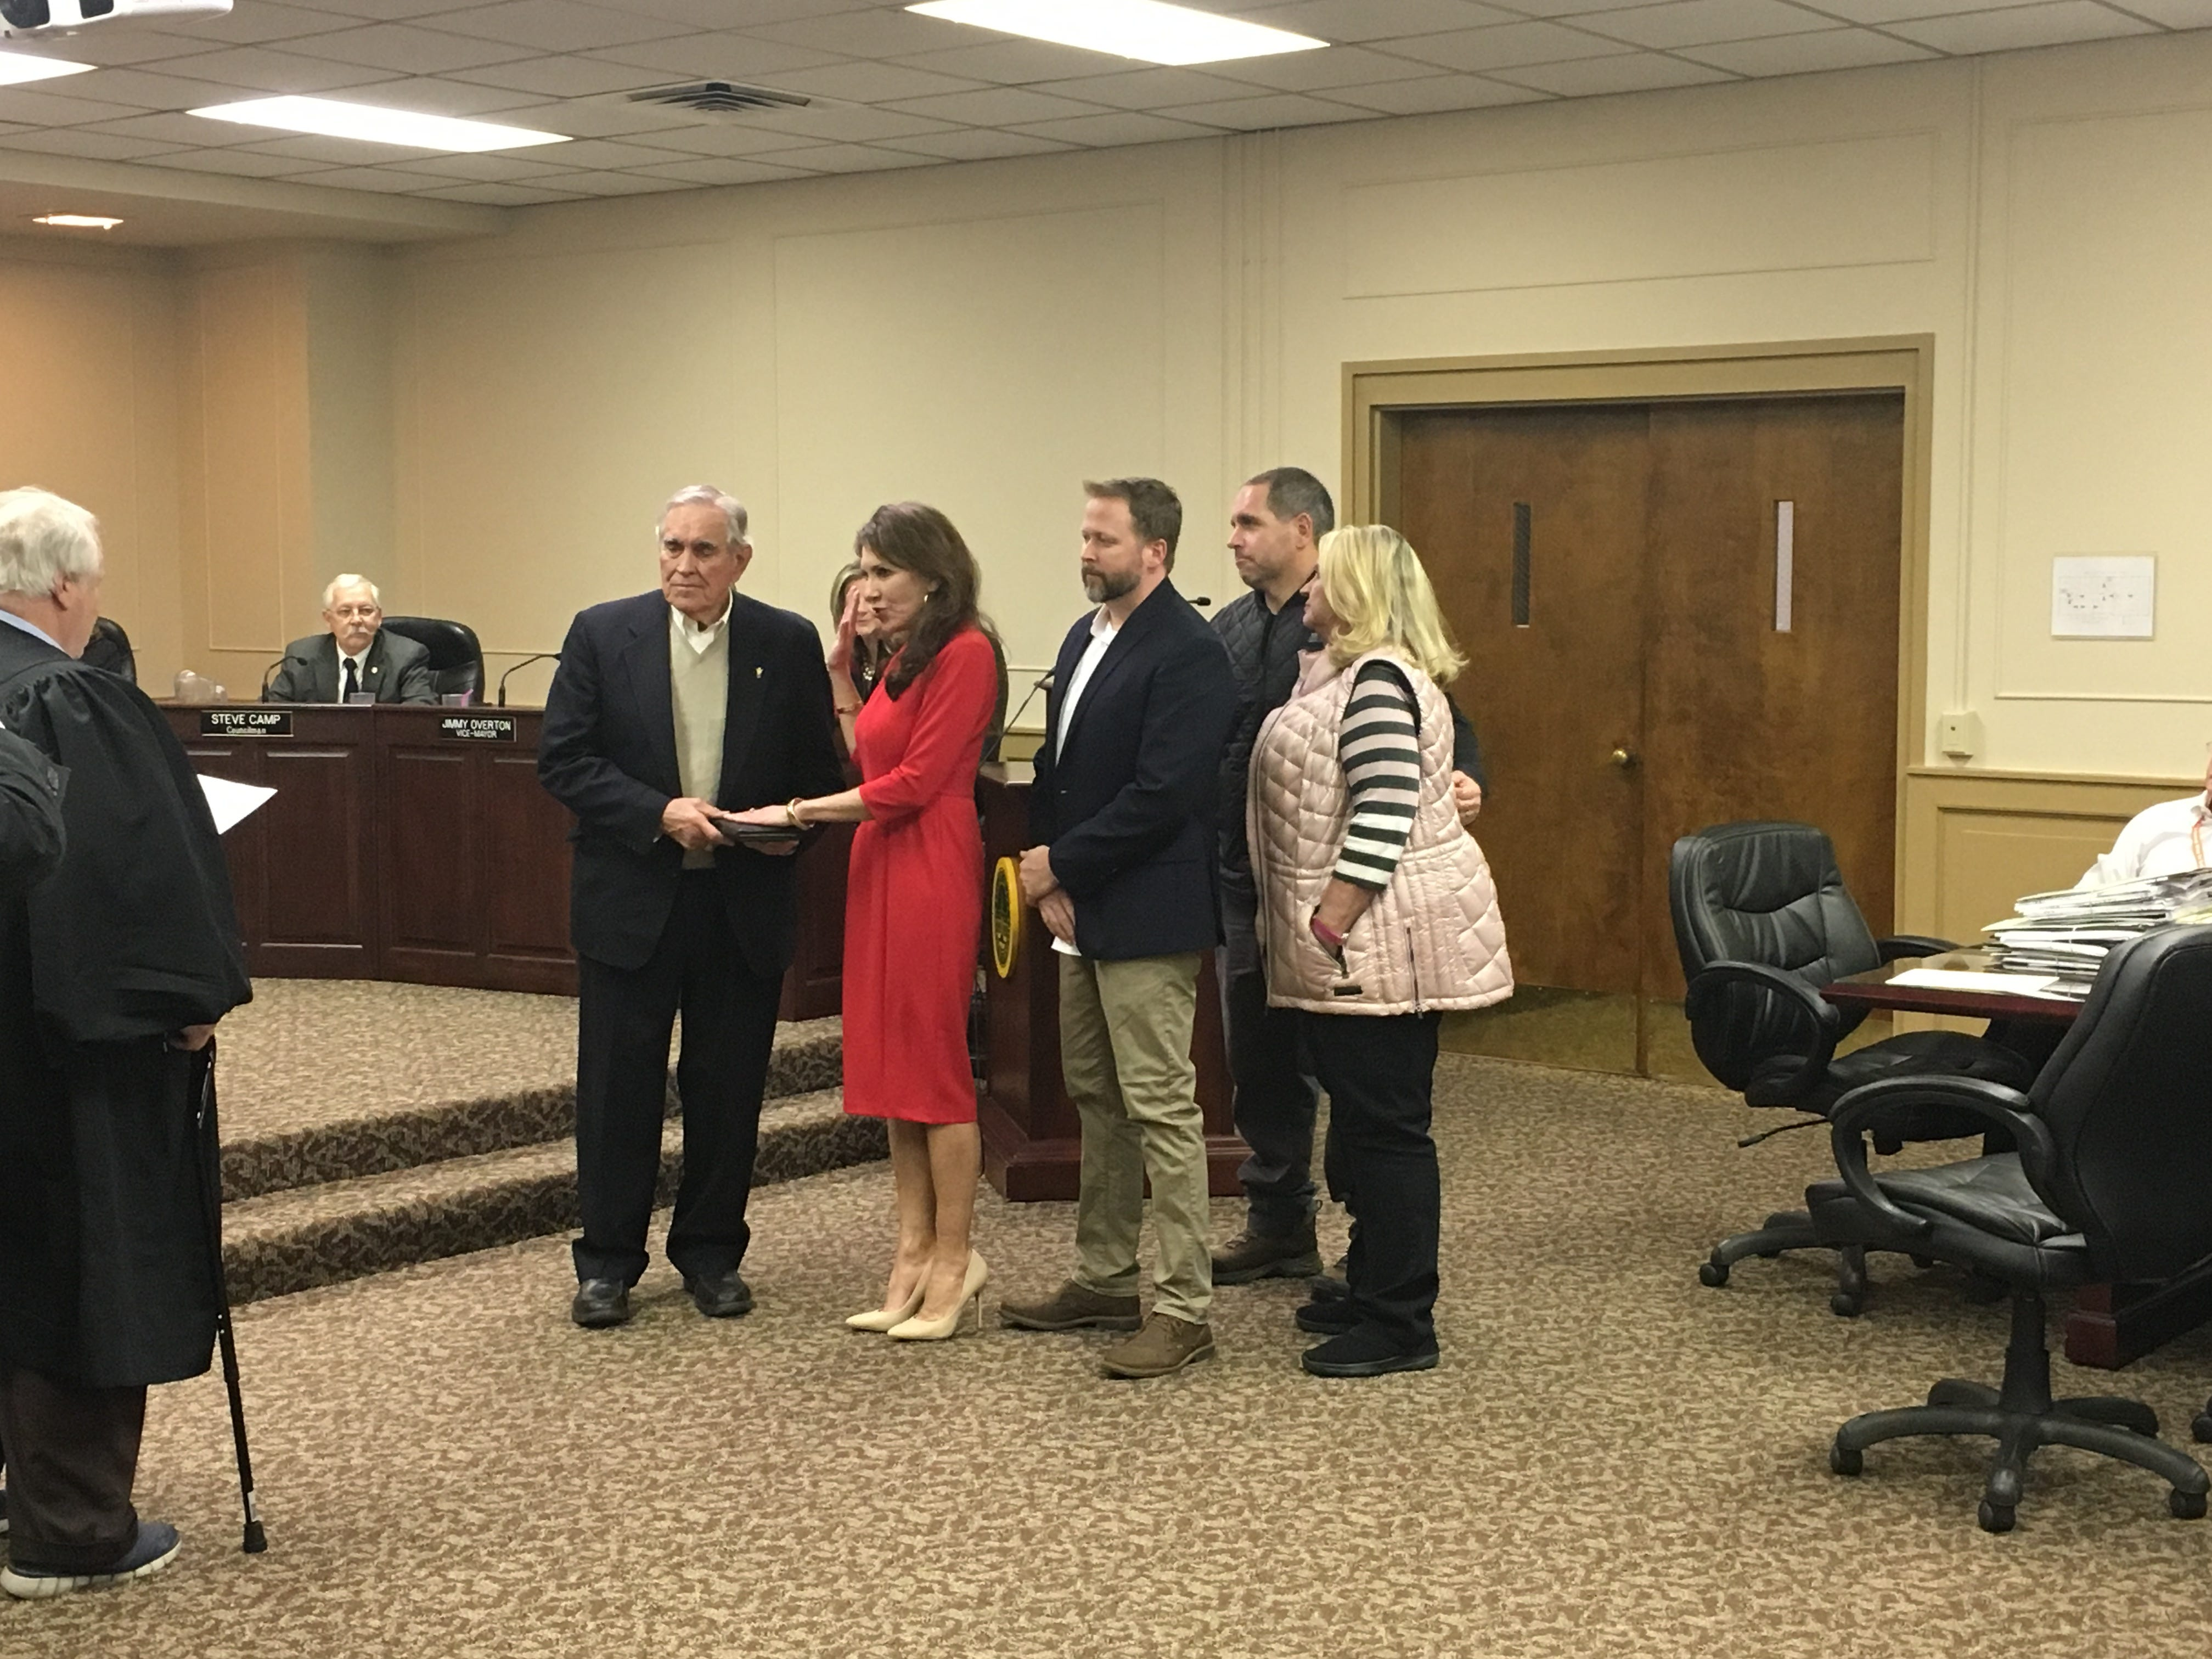 Paige Brown is sworn in as the Gallatin Mayor after winning re-election in 2018.